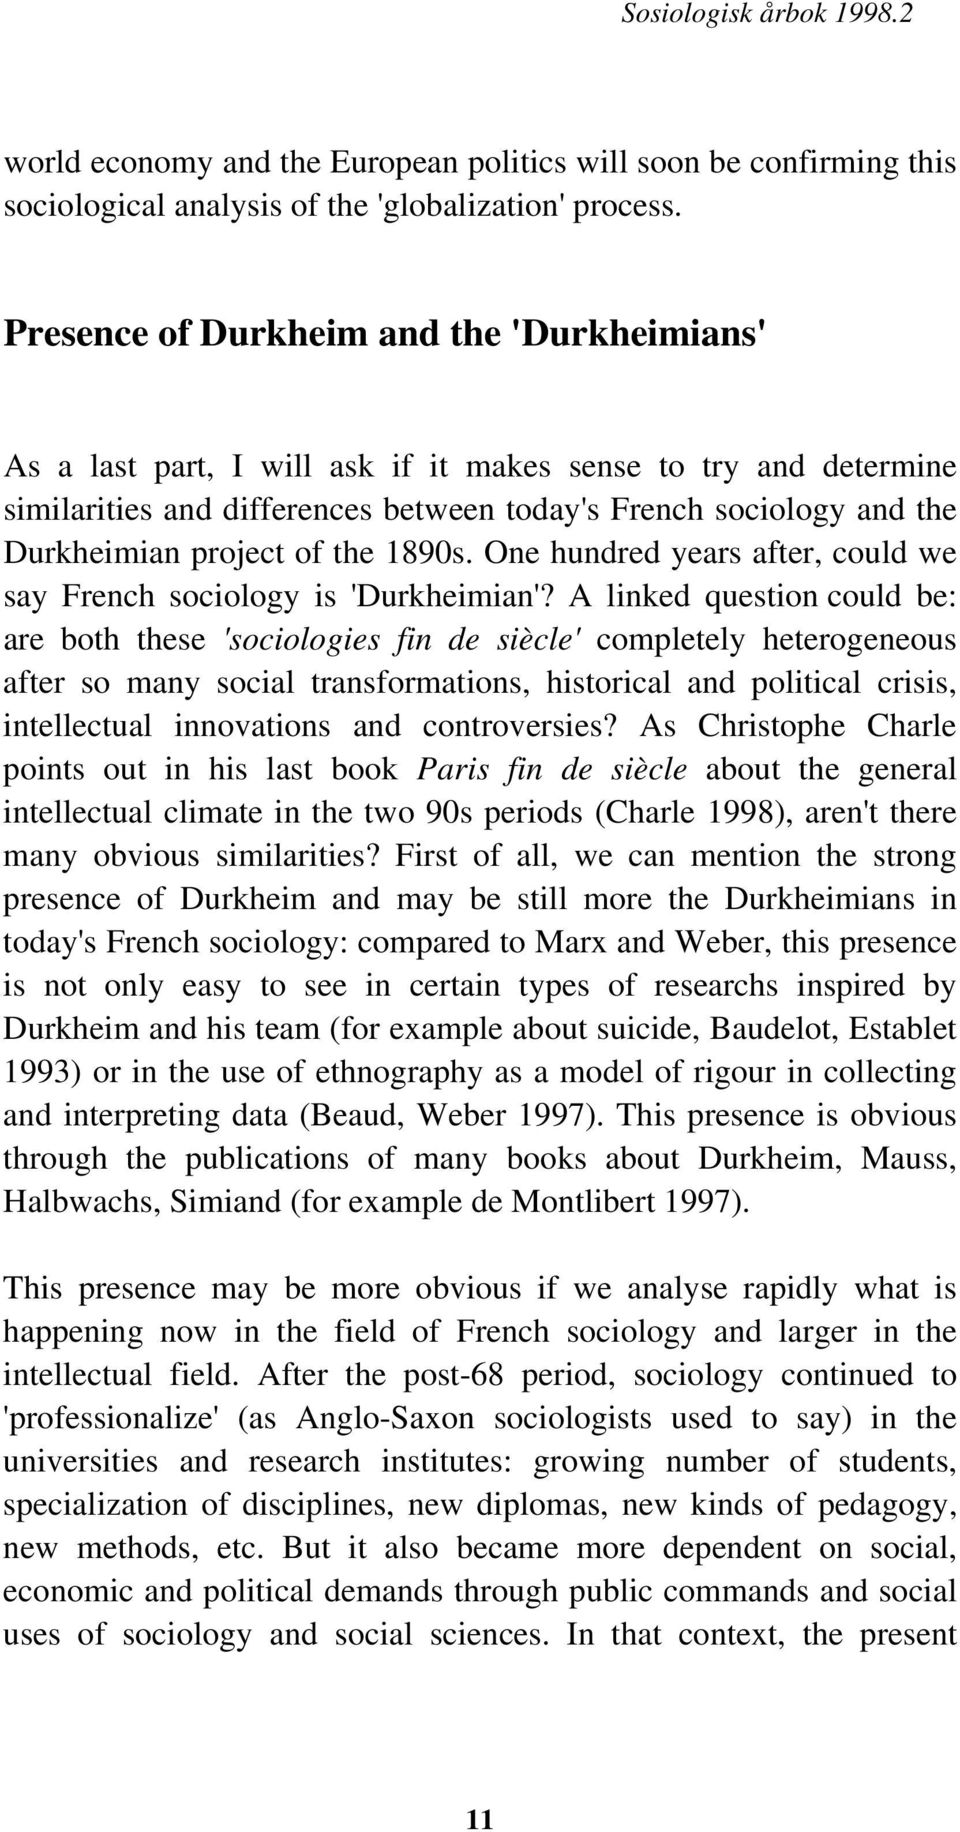 of the 1890s. One hundred years after, could we say French sociology is 'Durkheimian'?